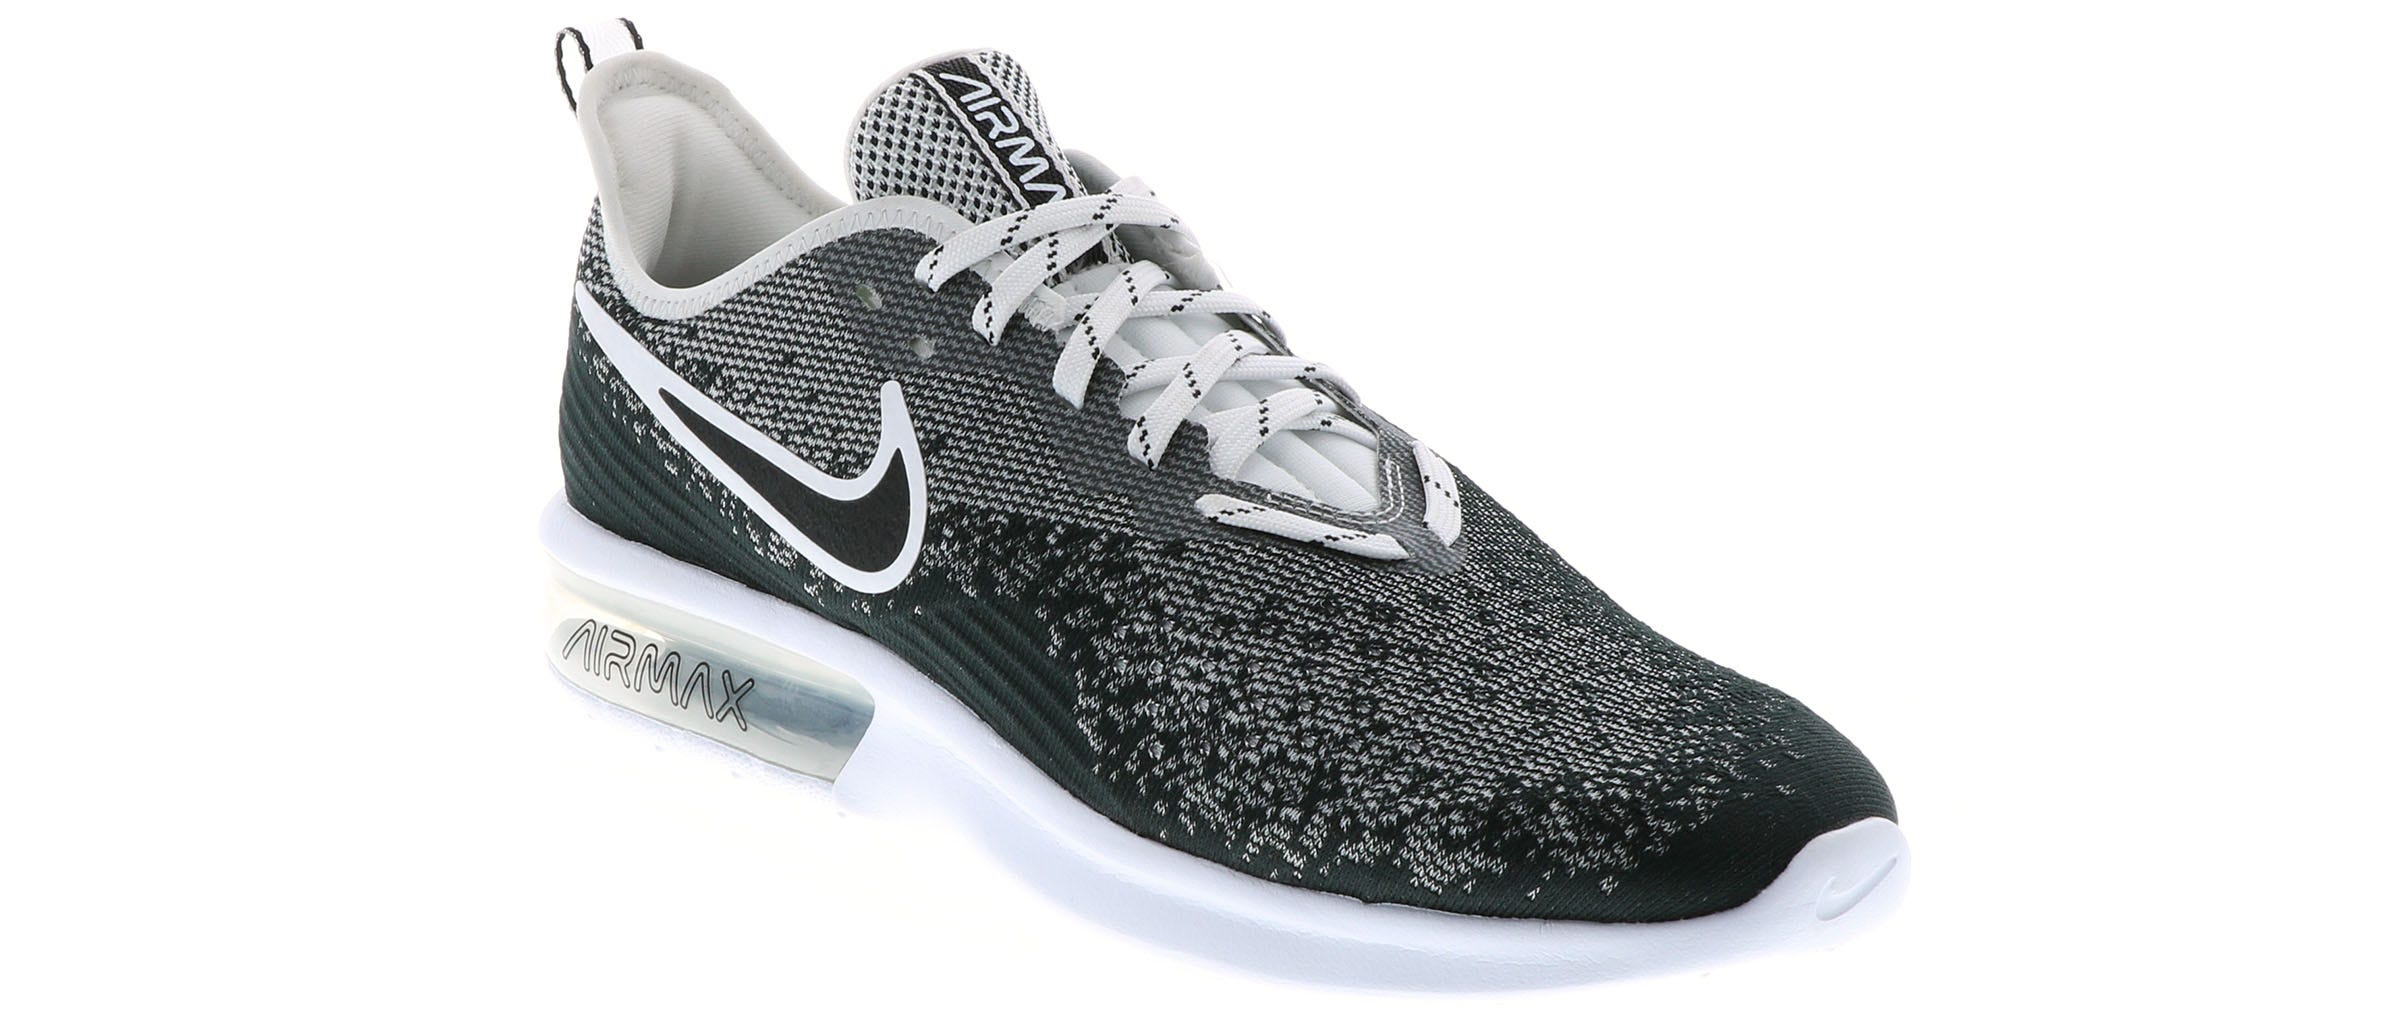 best shoes new authentic sells Men's Nike Air Max Sequent 4